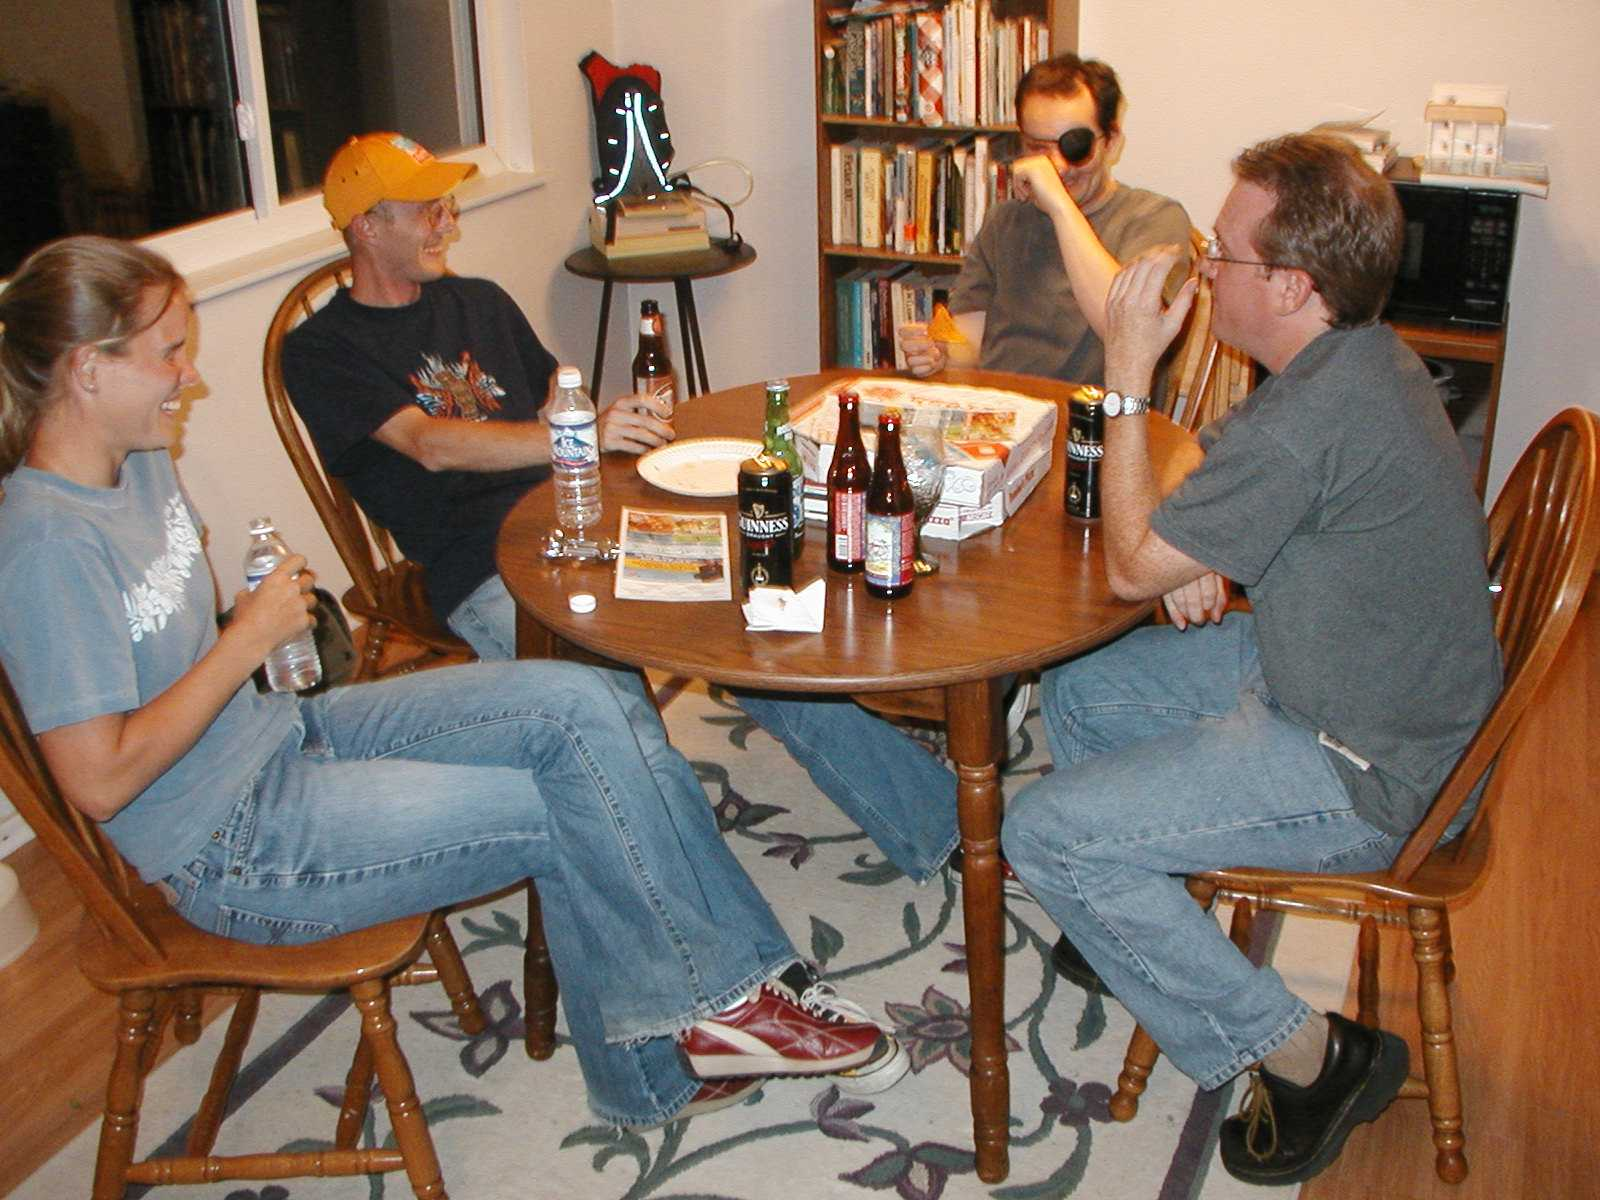 The hard drinkers.